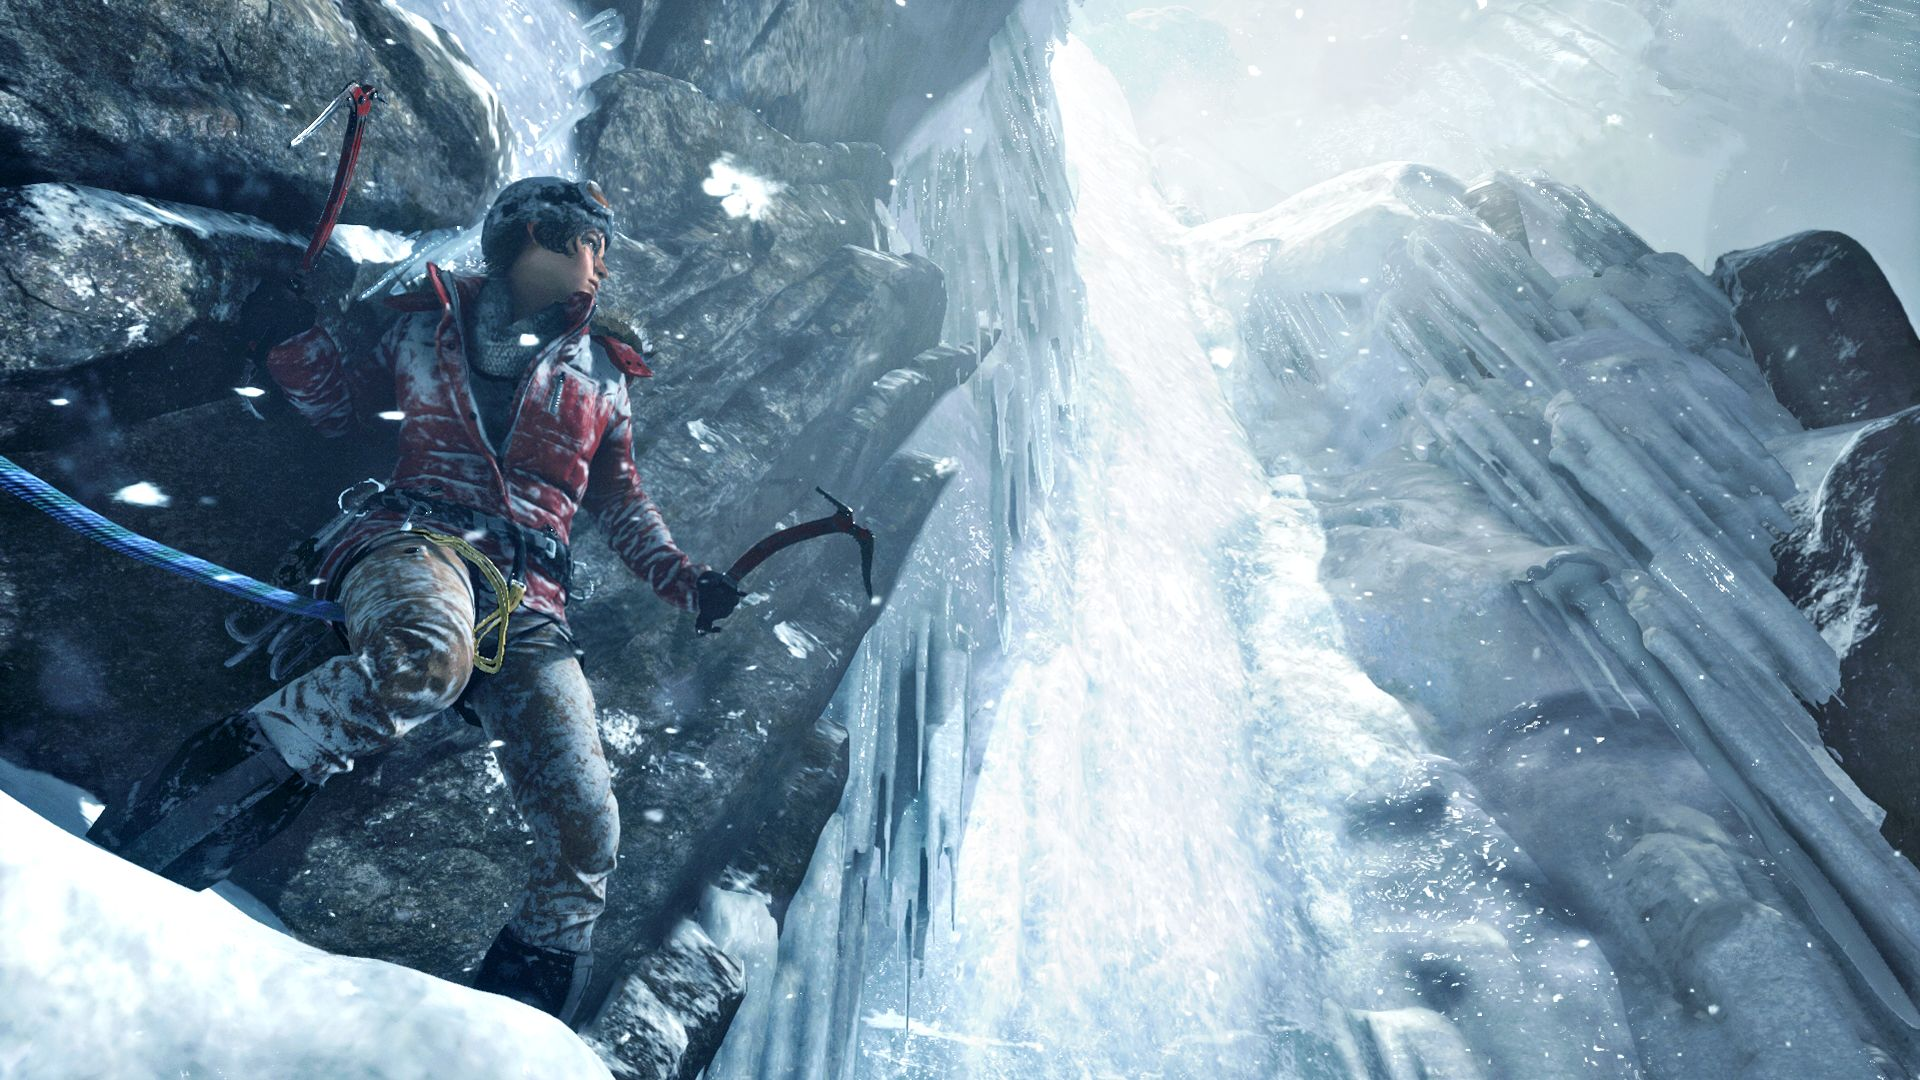 """Rise of the Tomb Raider"" Has Disappointing UK Sales - Less Than 65,000 Units"